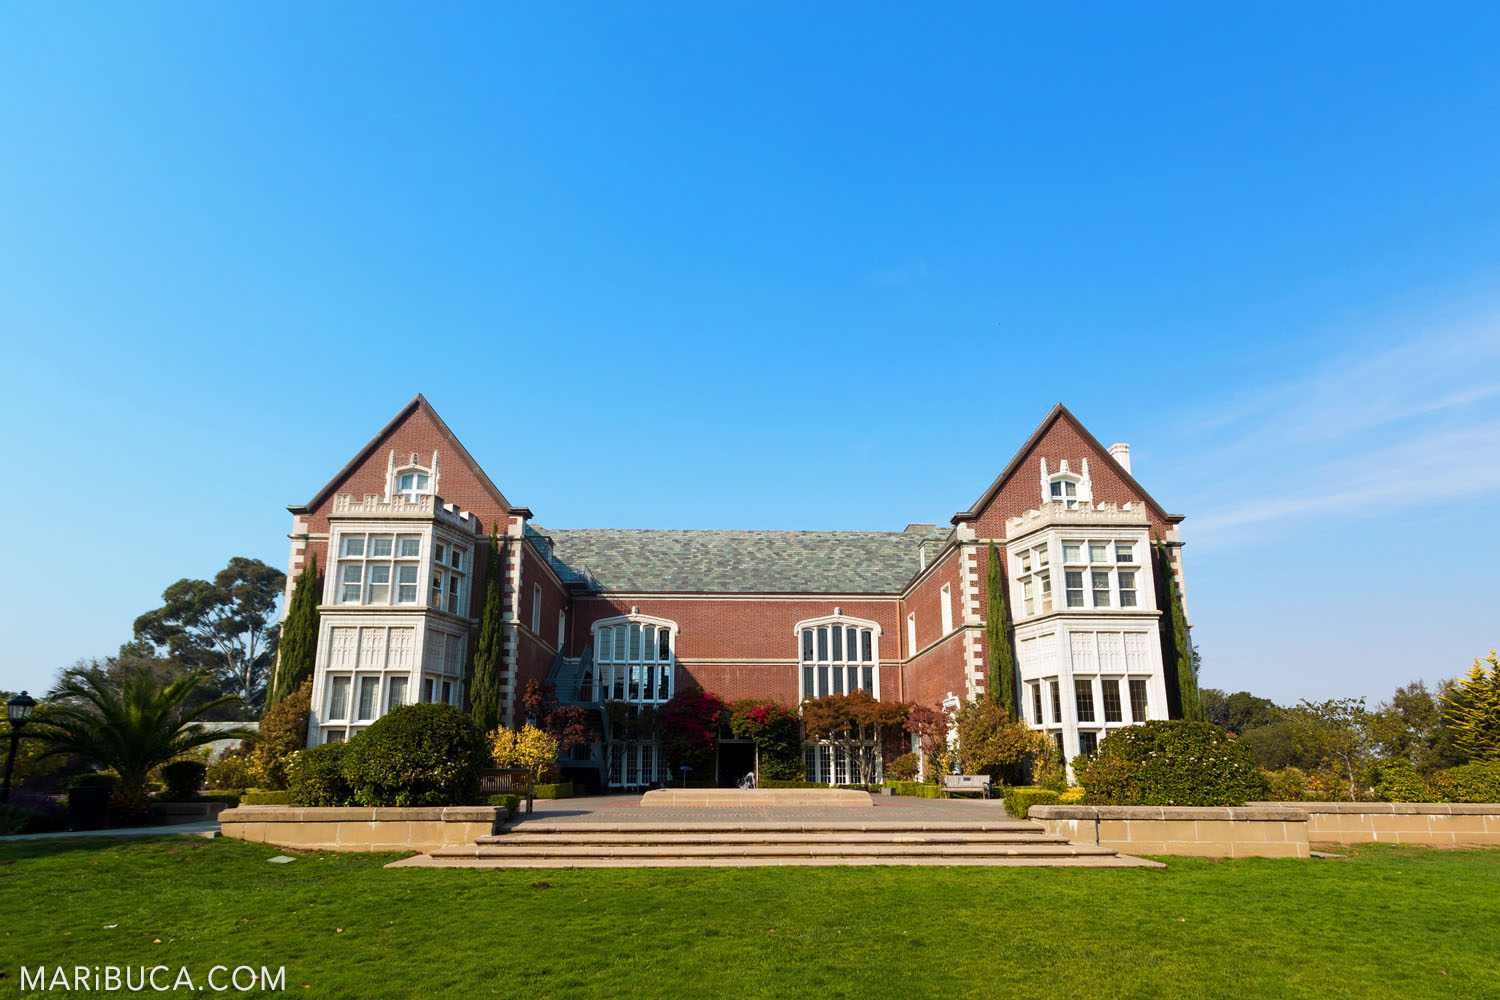 Kohl Mansion Venue Wedding is the gorgeous building and view, Burlingame.